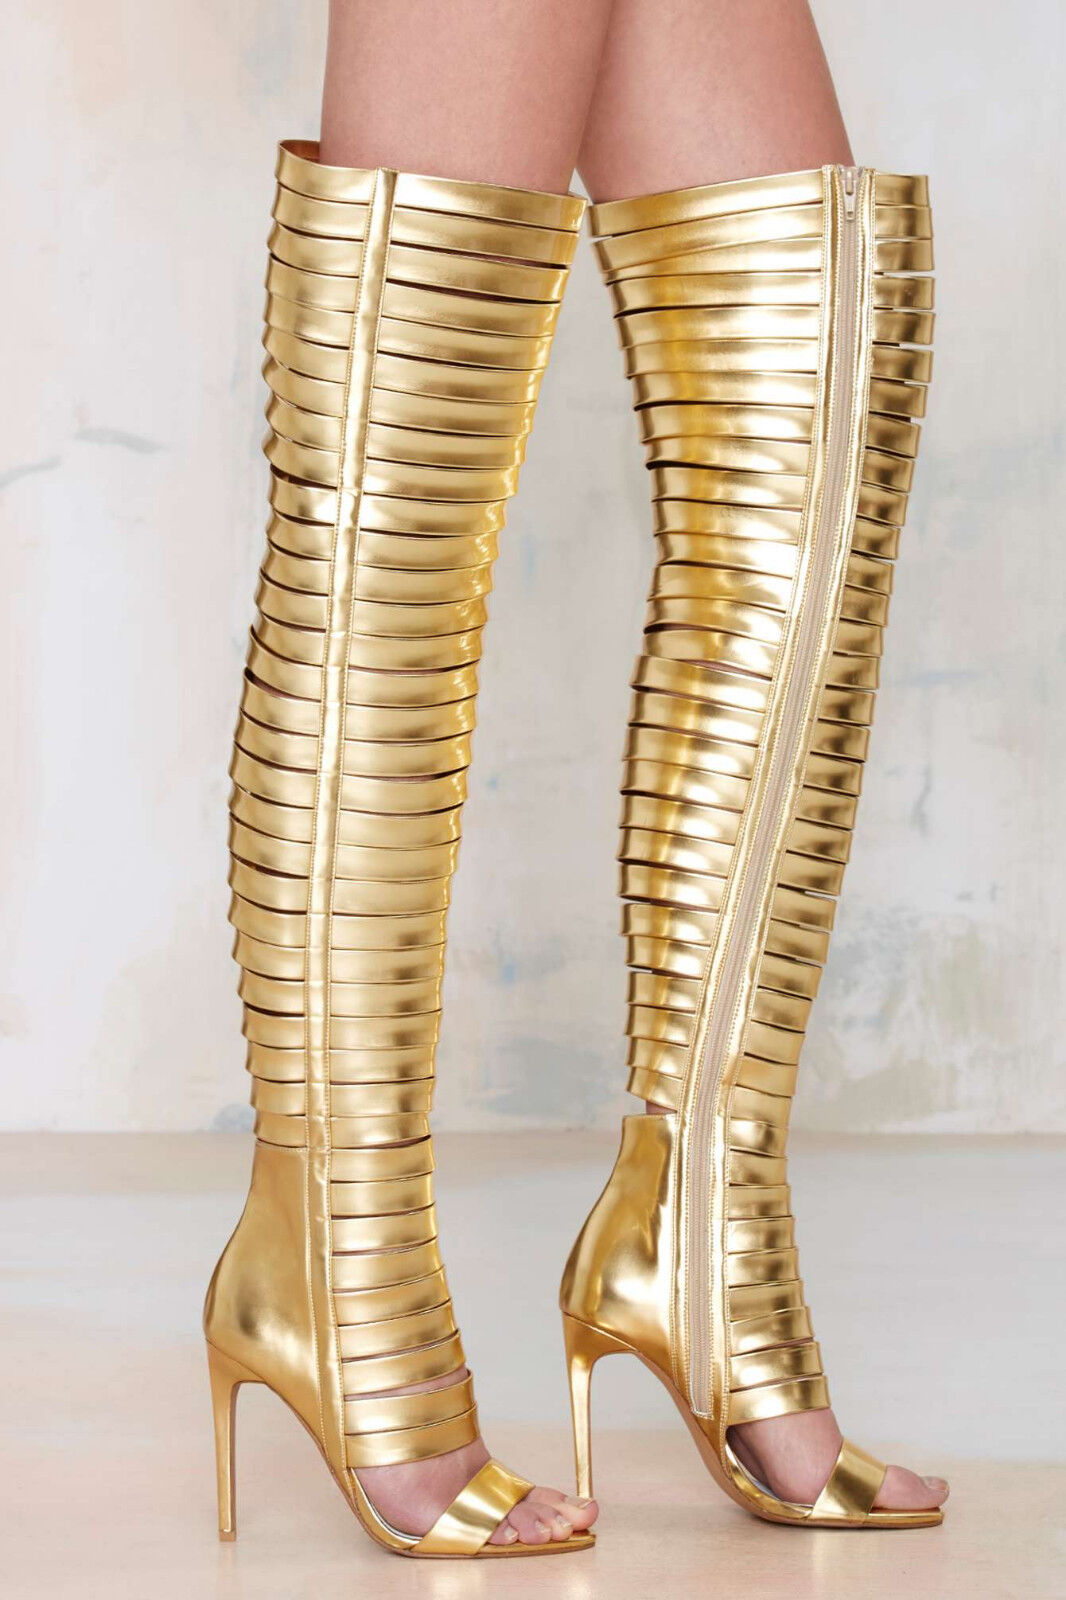 NEW JEFFREY CAMPBELL 250 GOLD BLINDED THIGH HIGH BOOTS HEELS Schuhe SZ 5.5